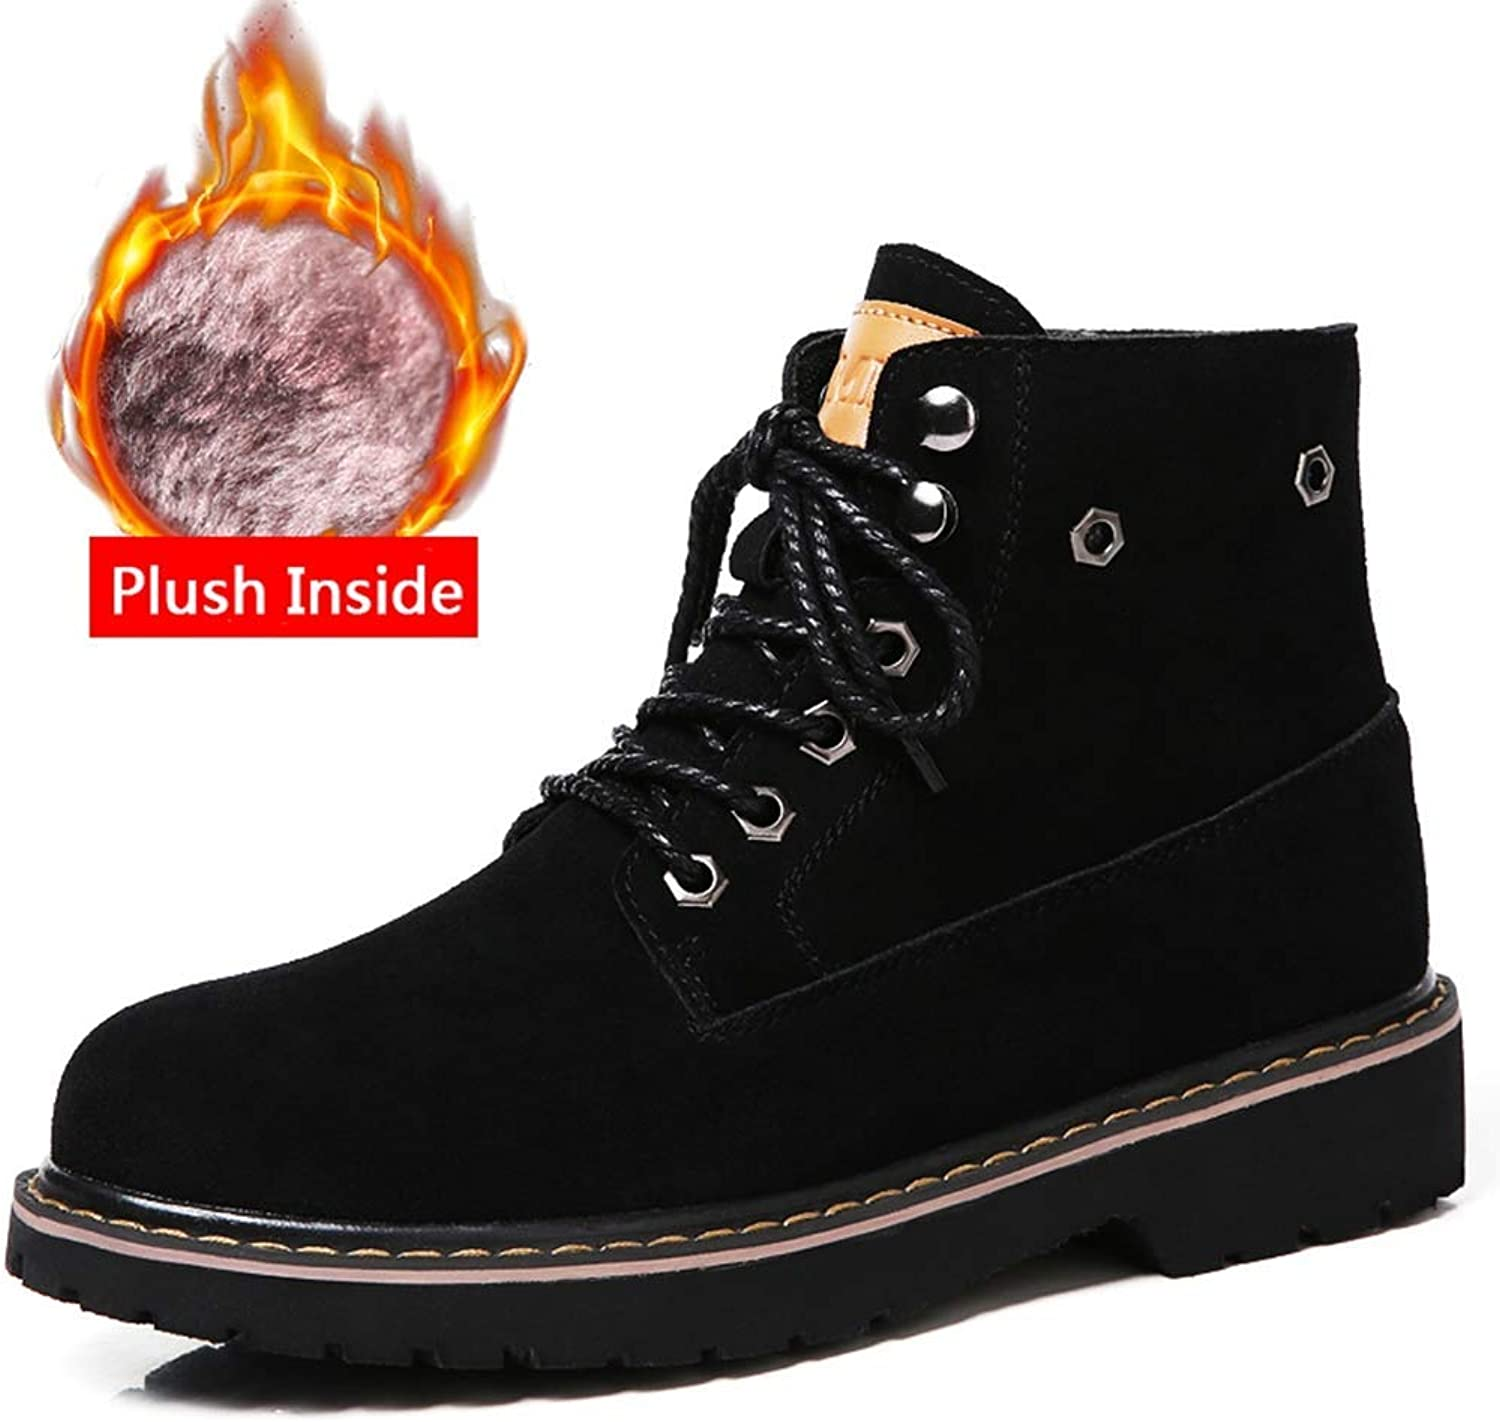 BMTH Women Winter Motorcycle Ankle Boots Ladies Round Toe Cow Suede Leather Boots Warm Lace Up Plush Flat Short Boots